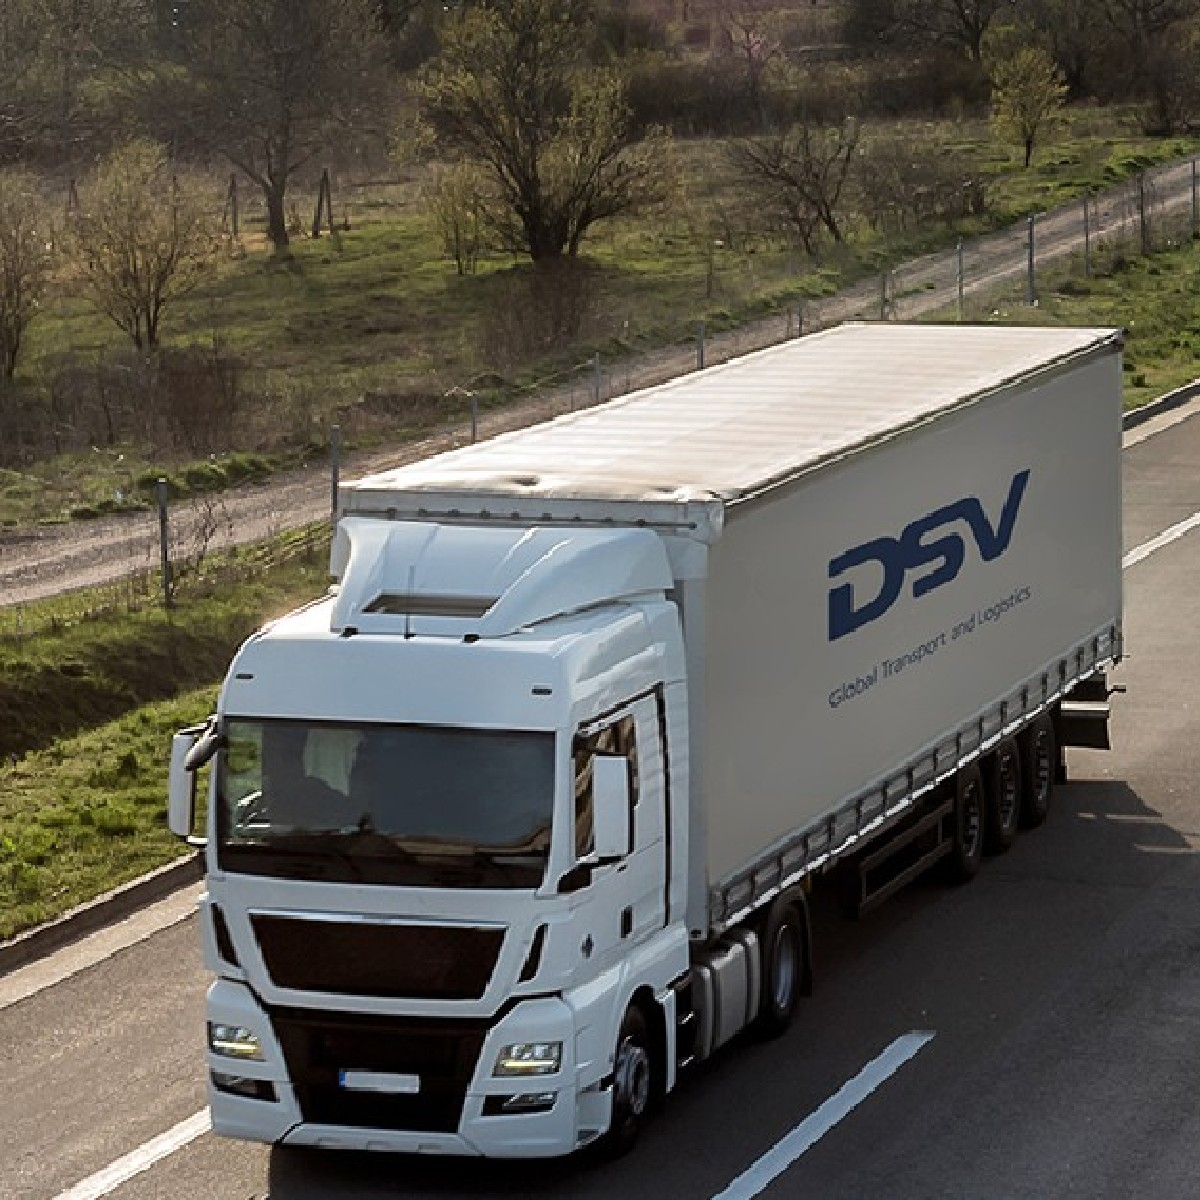 Whether you have a single shipment, a few pallets or multiple full loads every week, we can handle your cargo for all your road freight needs.  Discover our solutions for you on https://t.co/YnO4nZQEUQ   #dsv #moveforward #transport #logistics #markets #economy #cargo #sales https://t.co/jab7HKj7Dj